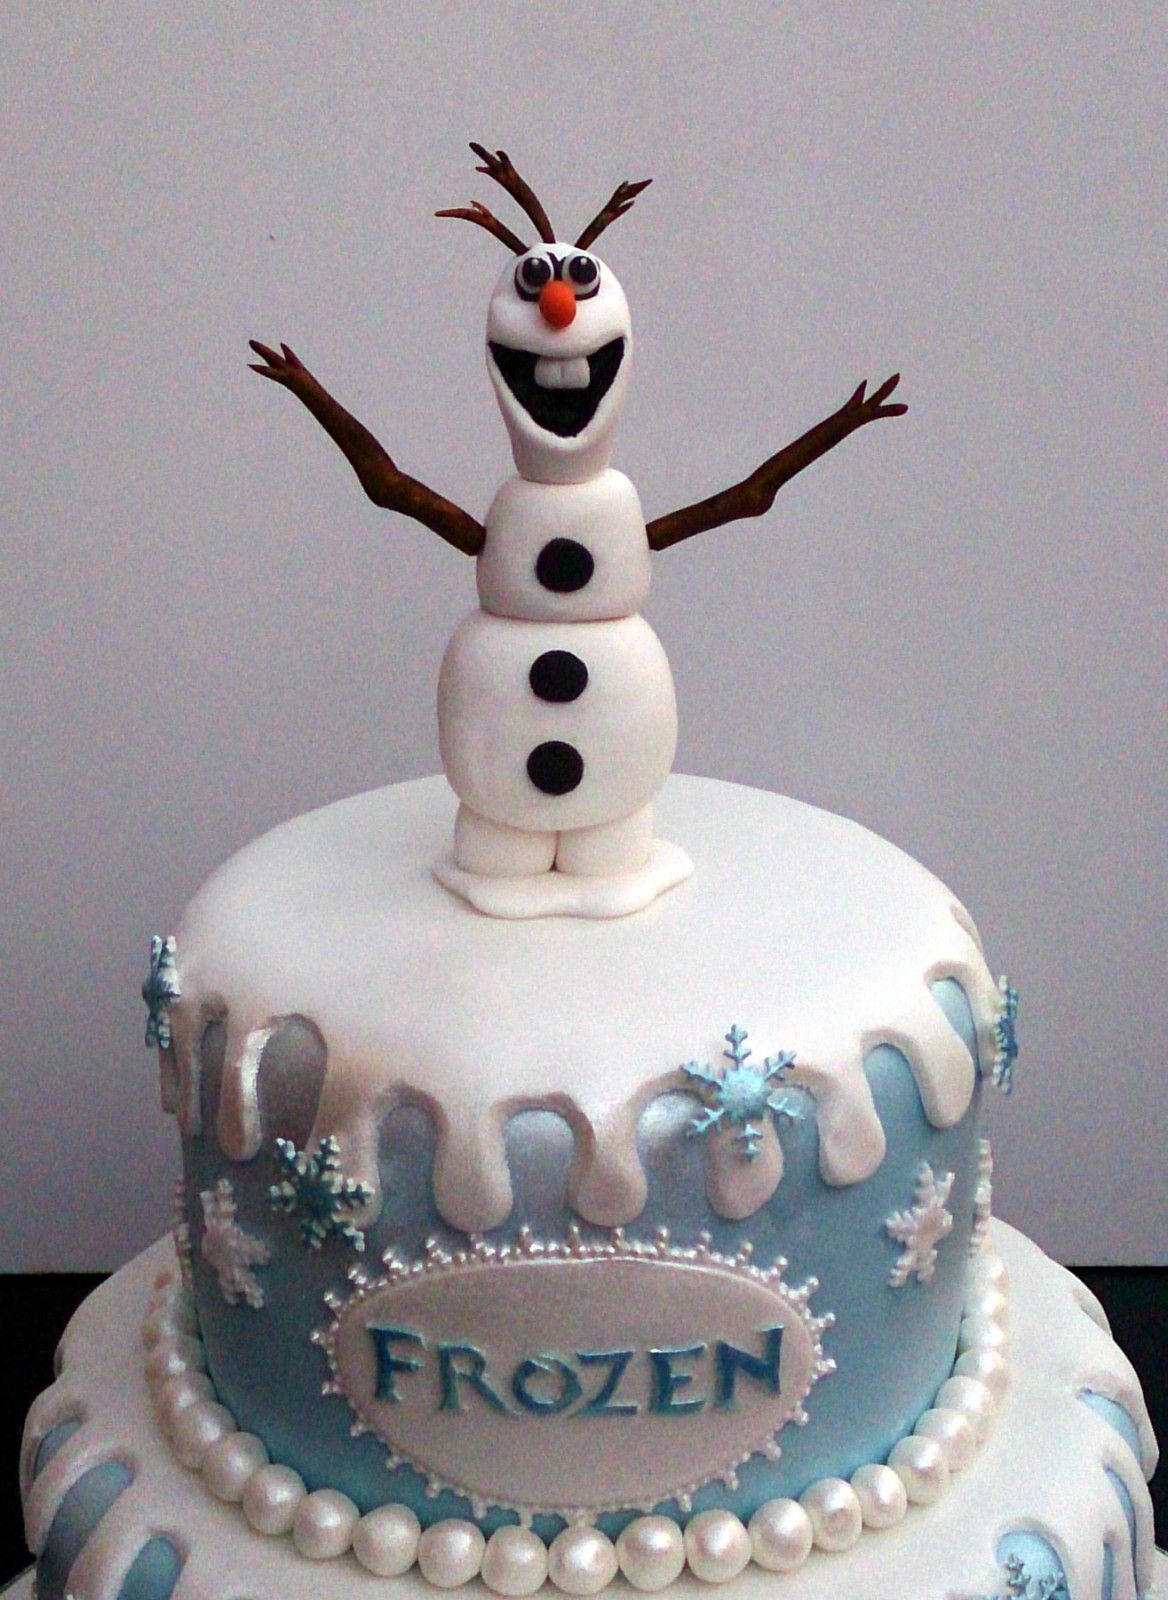 Birthday Cake Ideas Disney Frozen : disney-frozen-themed-birthday-cake-sponge-poole-dorset ...